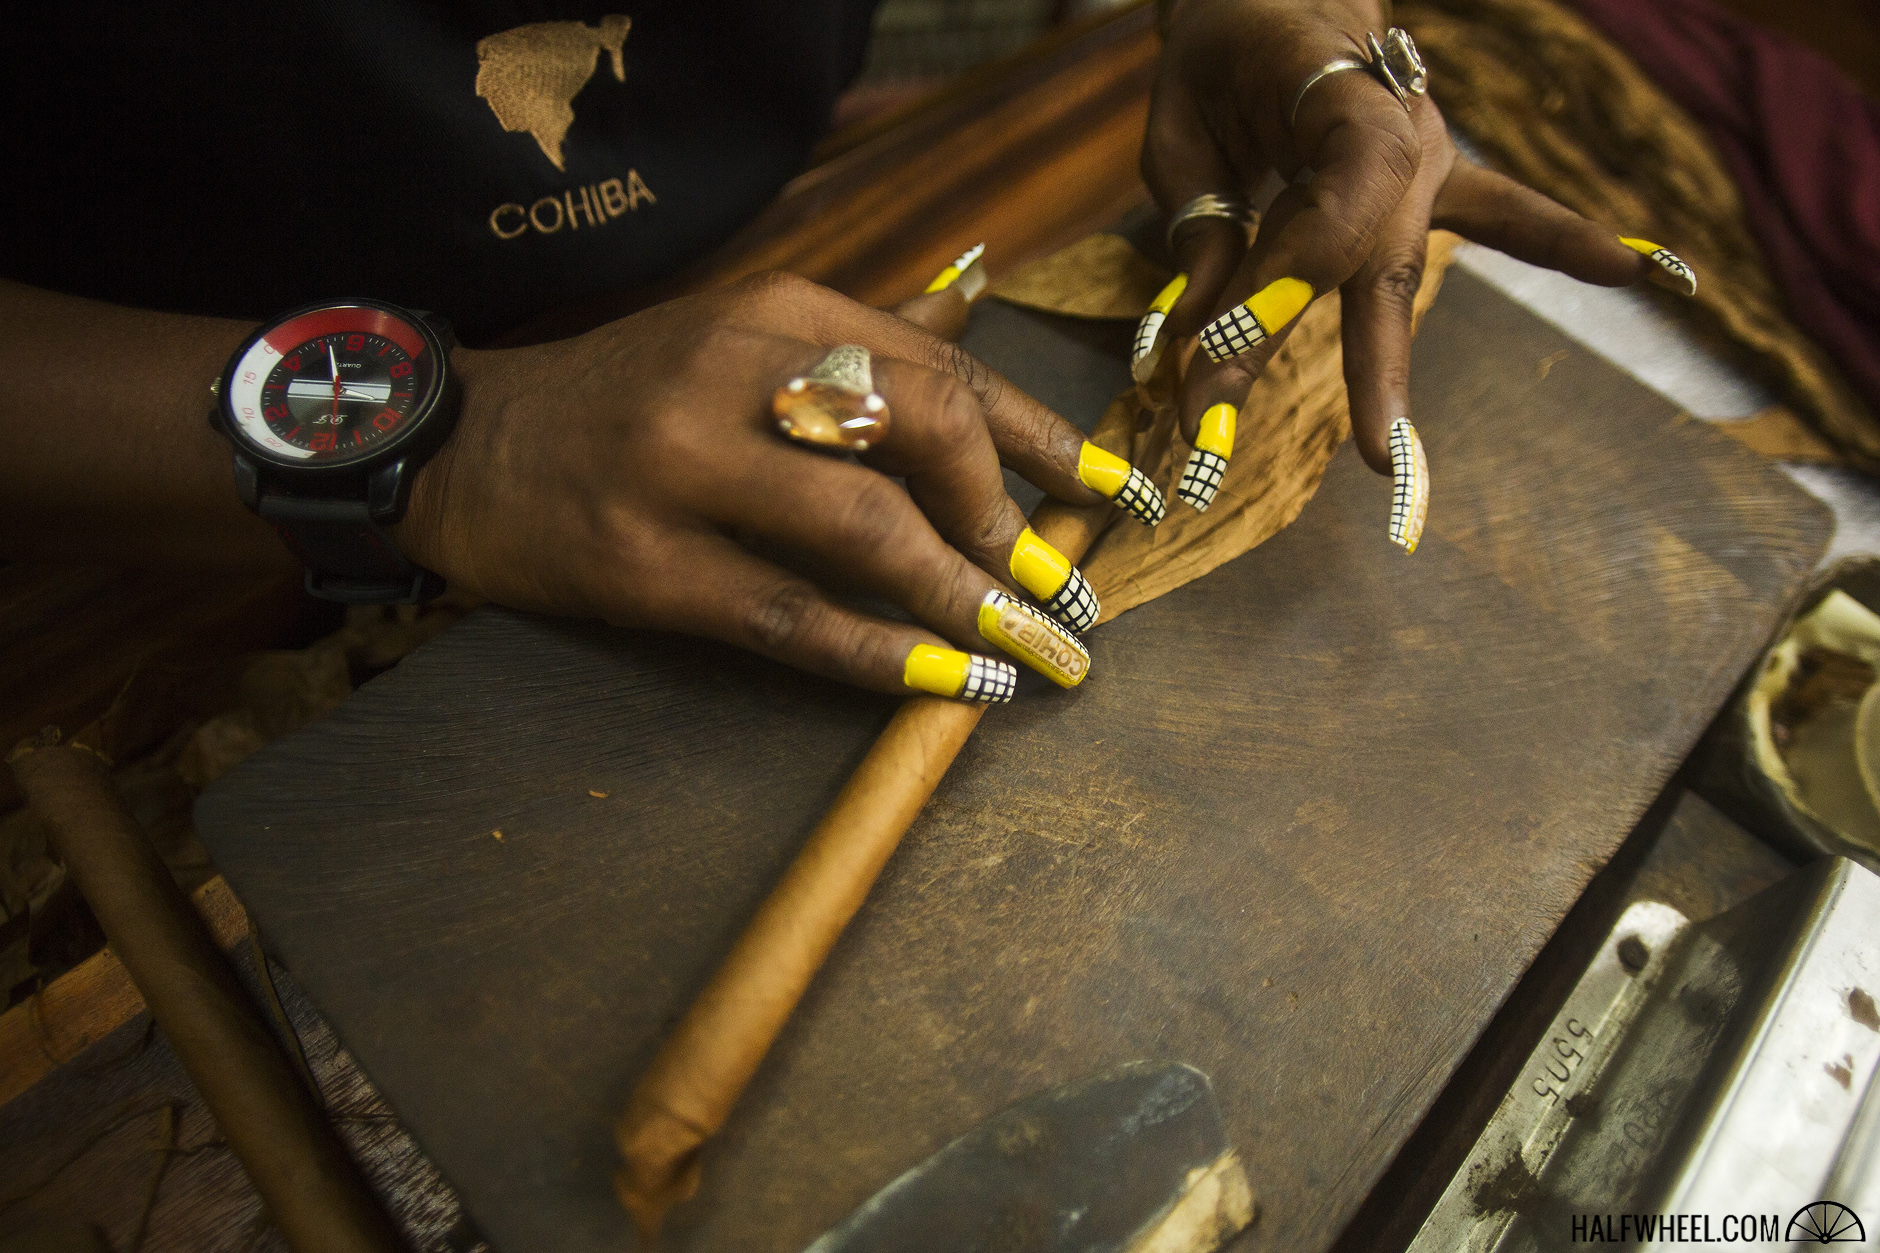 El Laguito Factory Cohiba nails